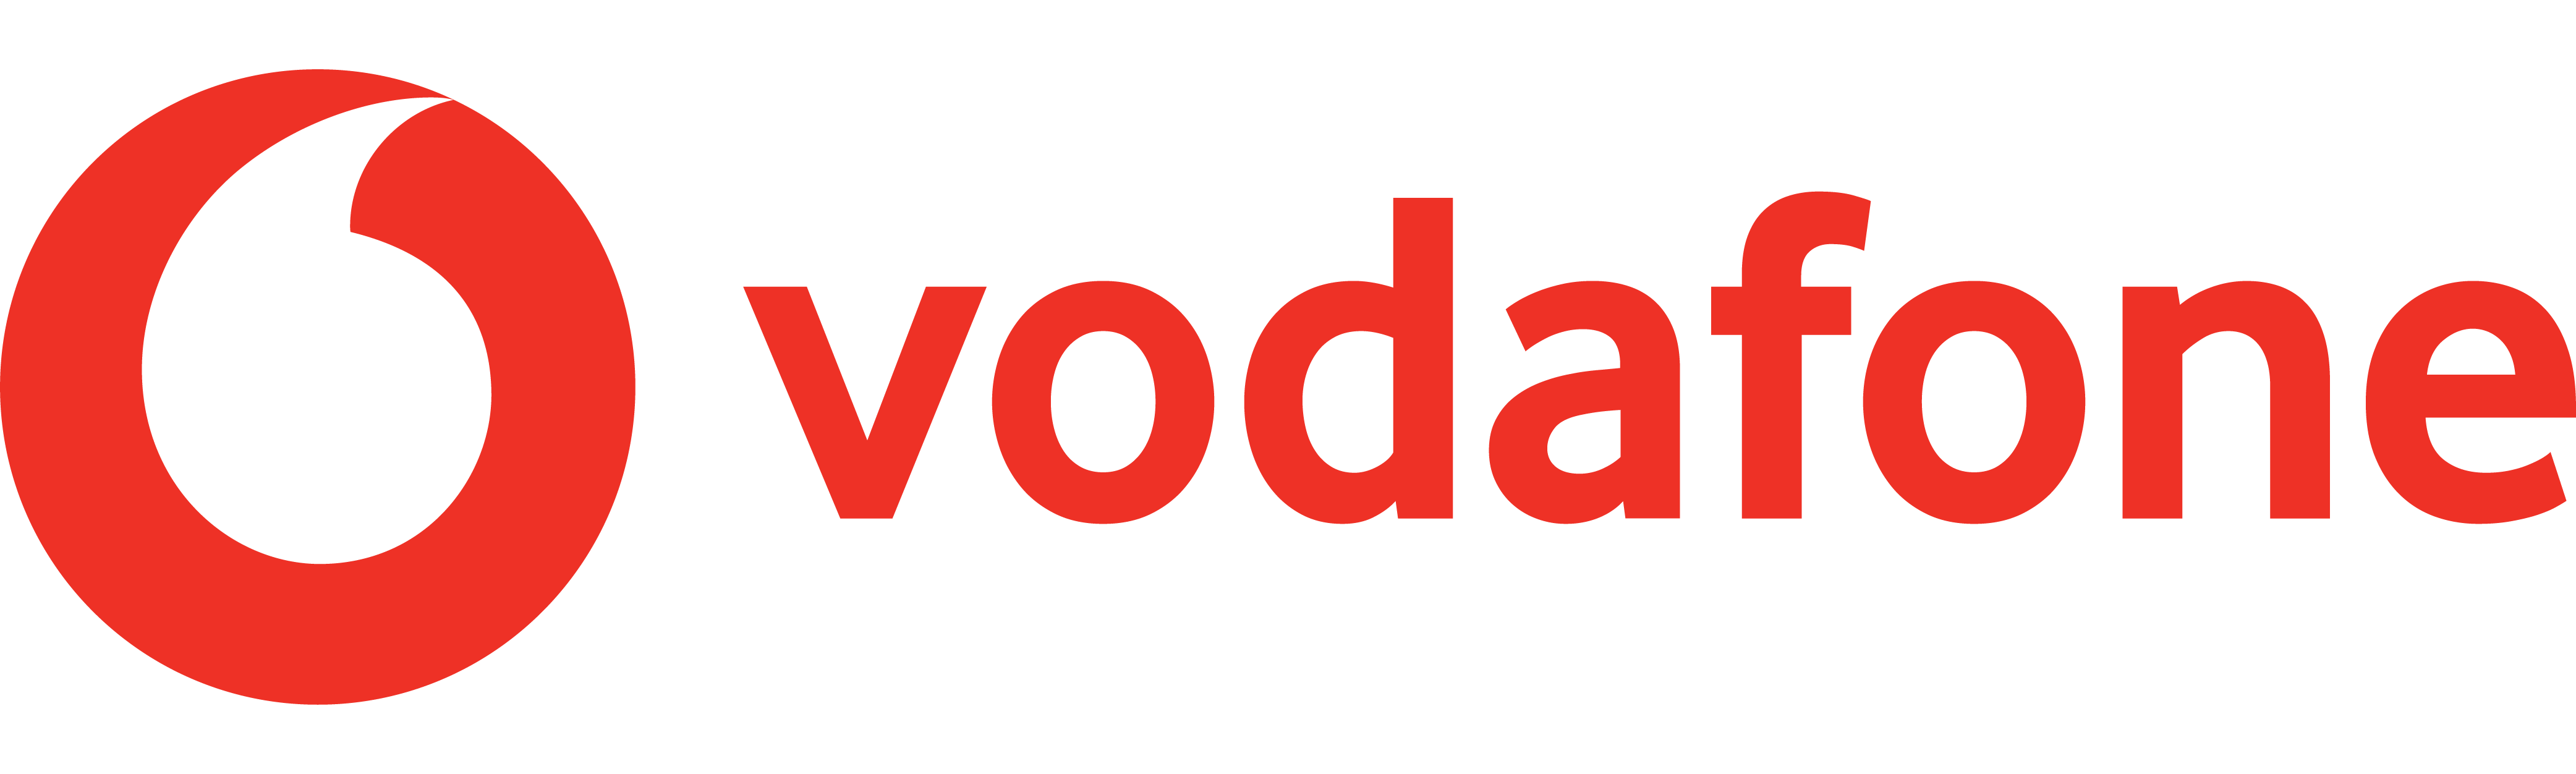 Adeva developers worked with vodafone